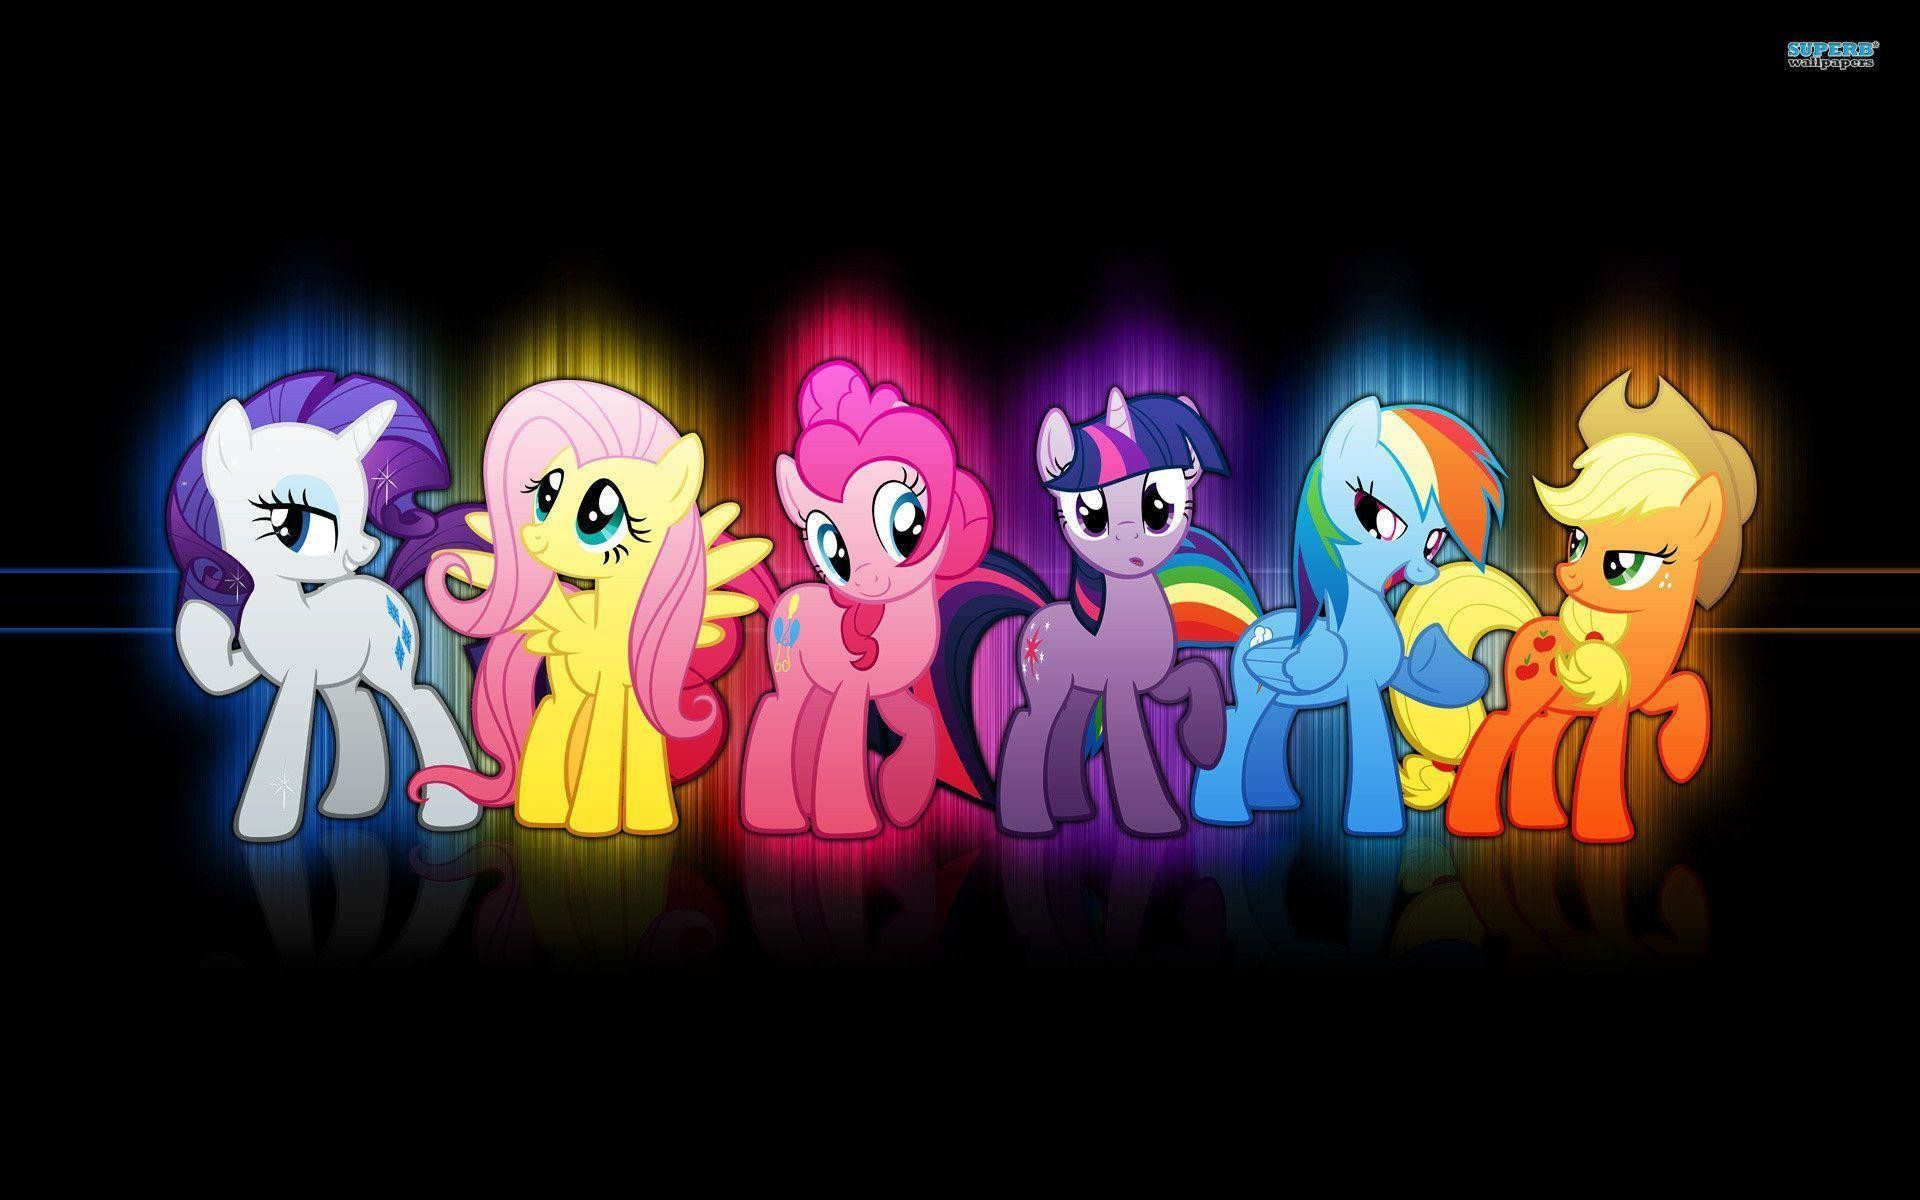 1920x1200 Wallpapers de My little pony: Friendship is Magic - Taringa!